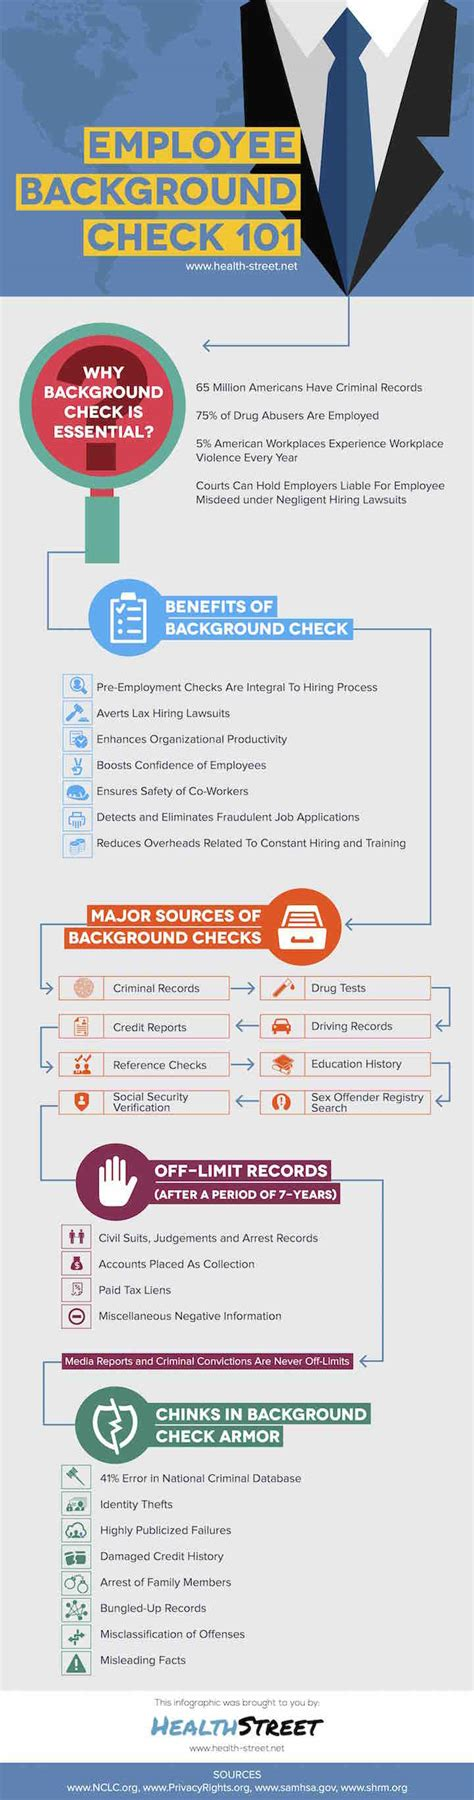 Hr Background Check Employee Background Check 101 Health